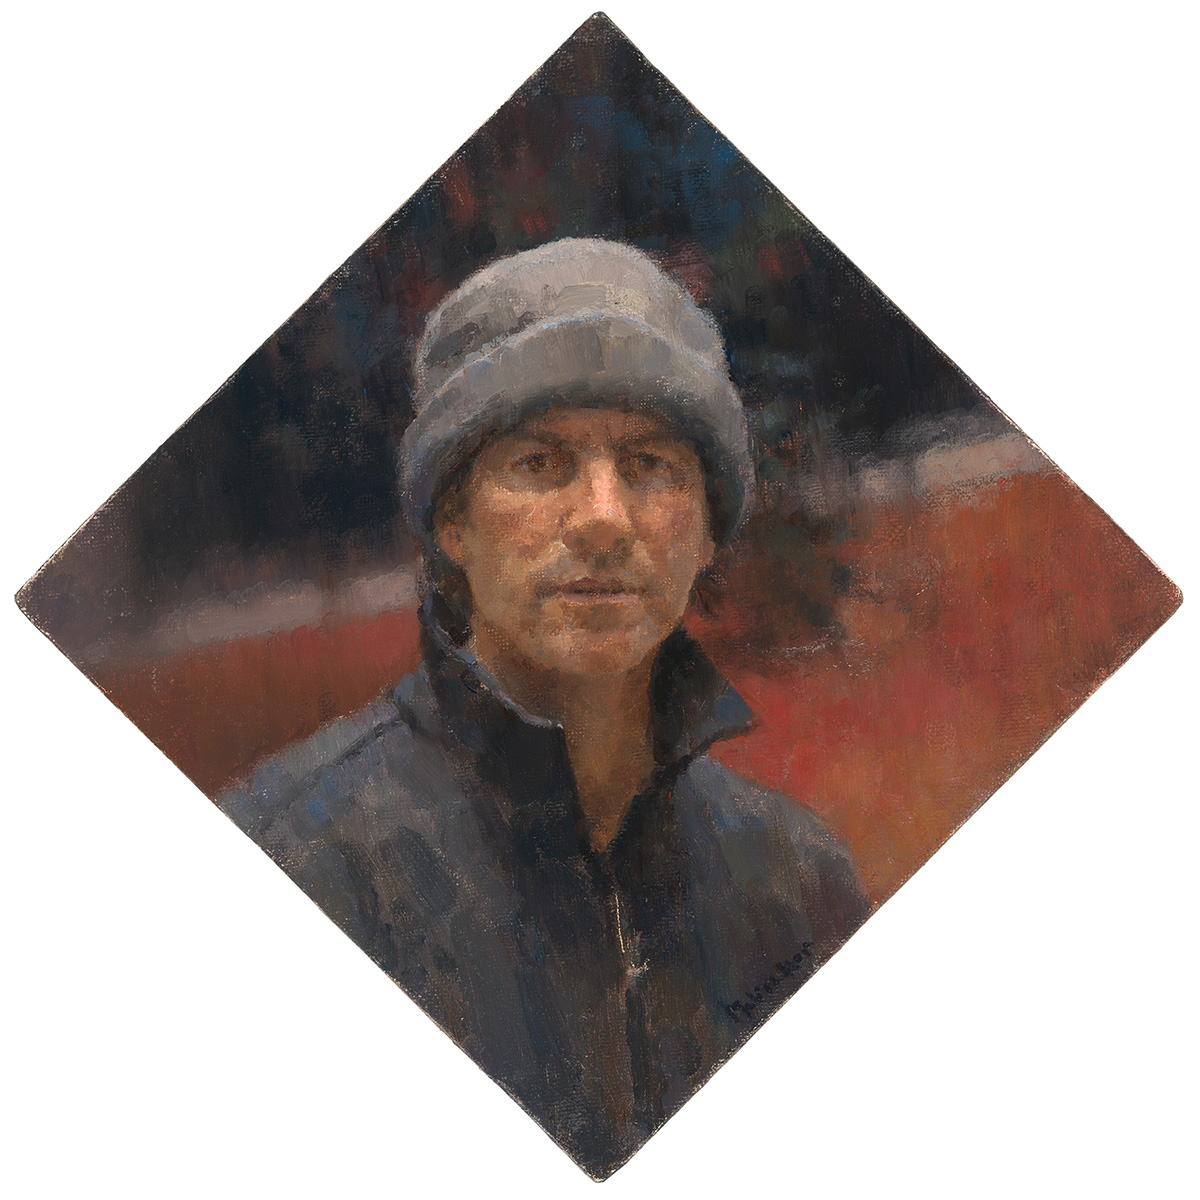 Jim McVicker, self-portrait, oil on linen